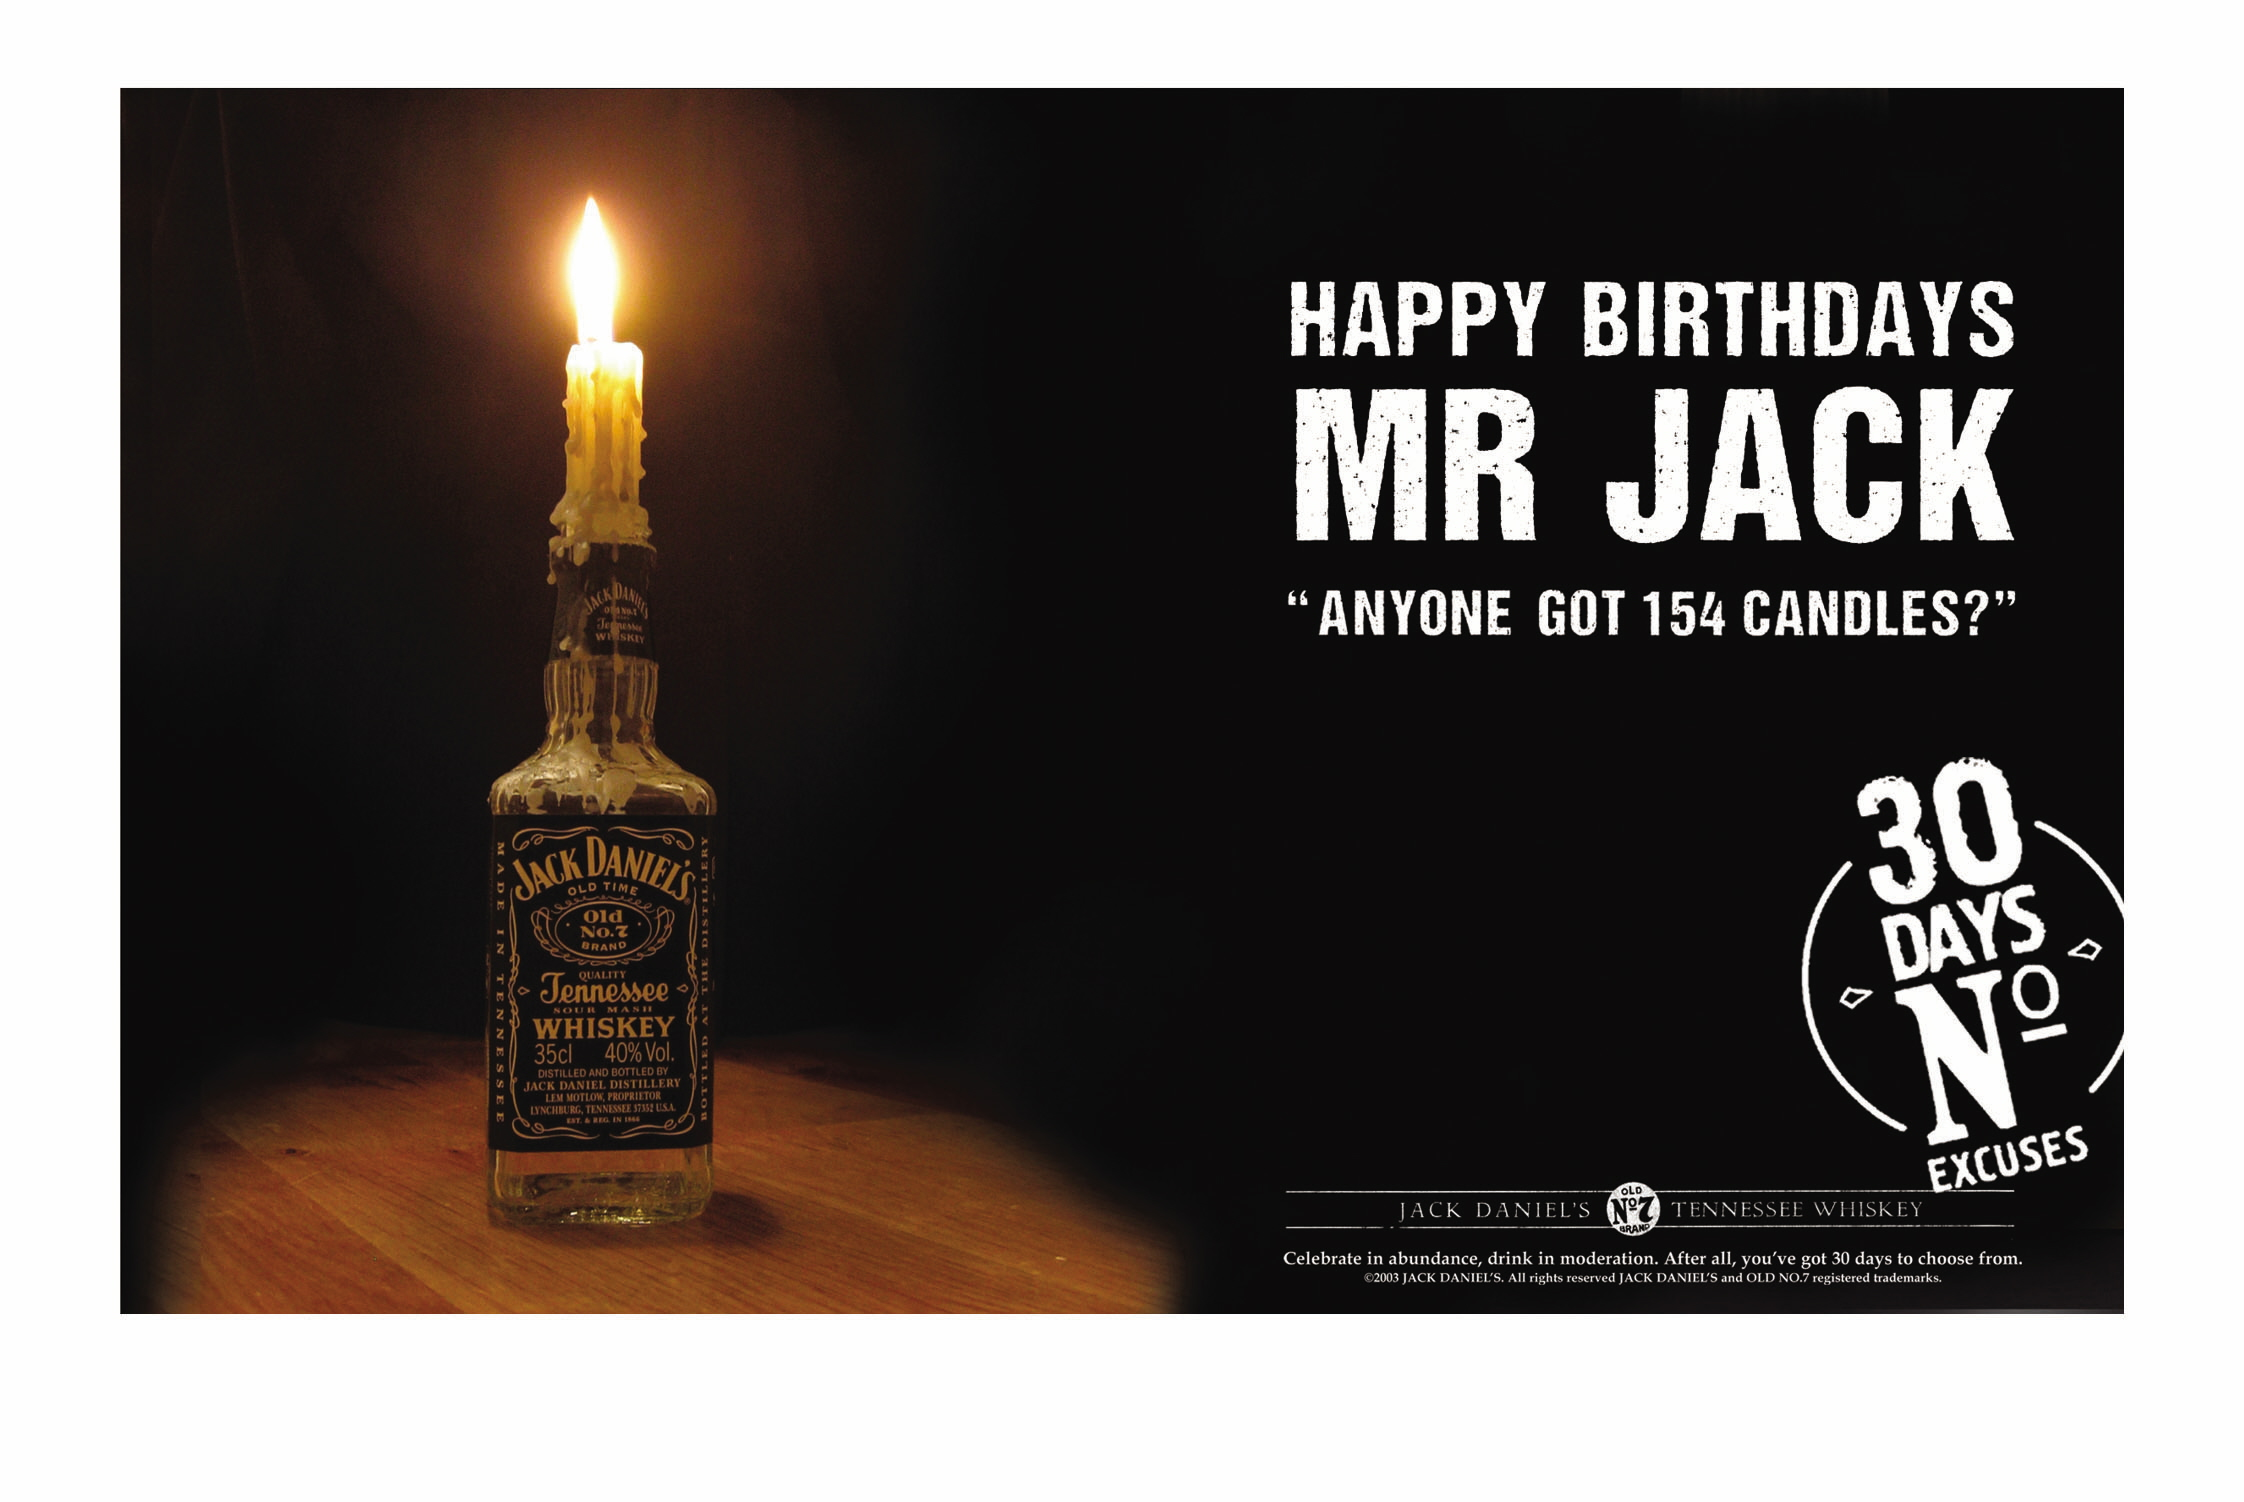 ads by dan buxton at com jack daniels ad